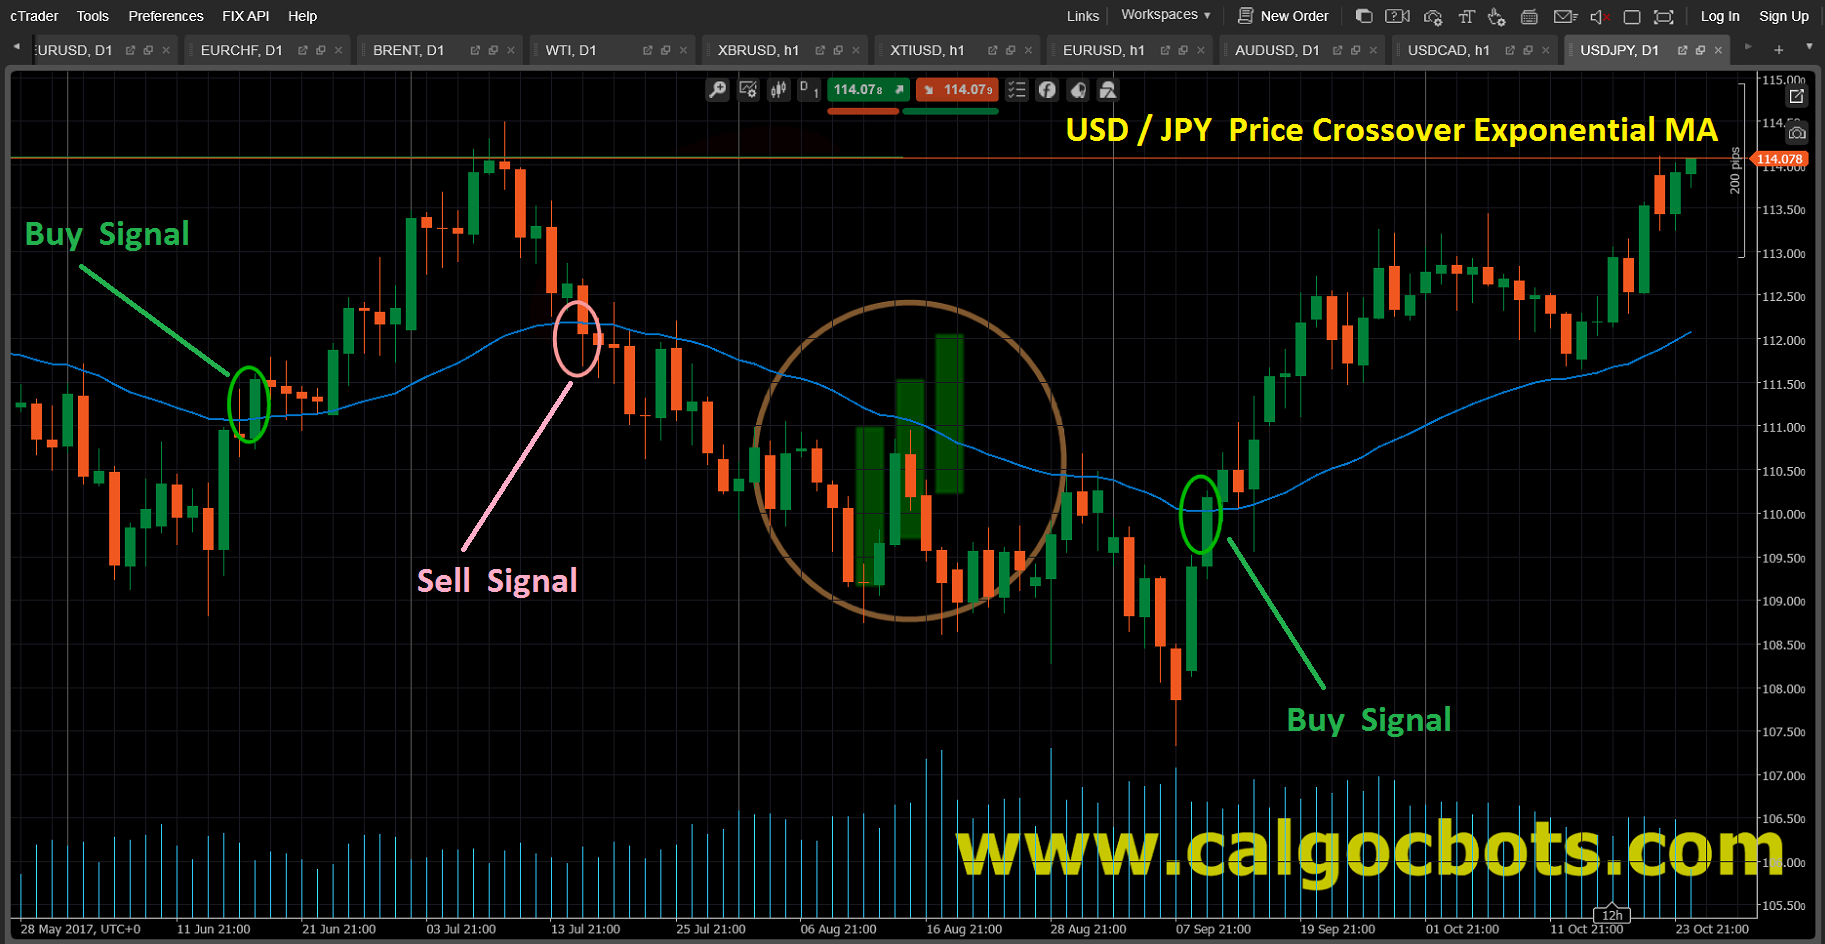 Price Crossover Exponential MA Candlestick_Chart_USD_JPY_cAlgo_cBots_cTrader_01